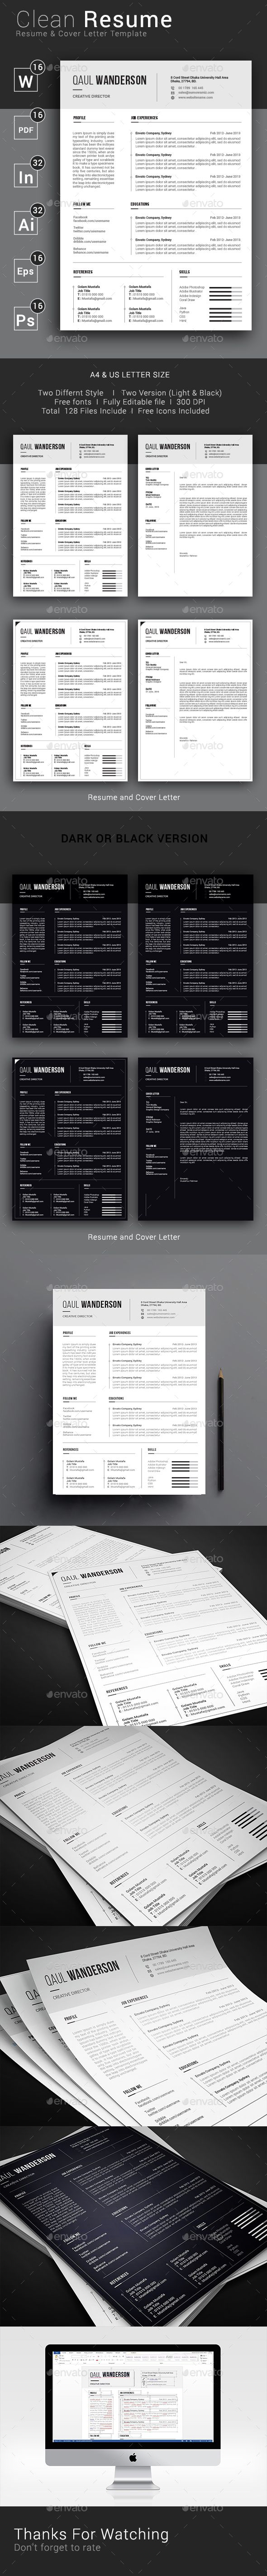 Clean Resume / CV Template PSD, Vector EPS, InDesign INDD, AI ...